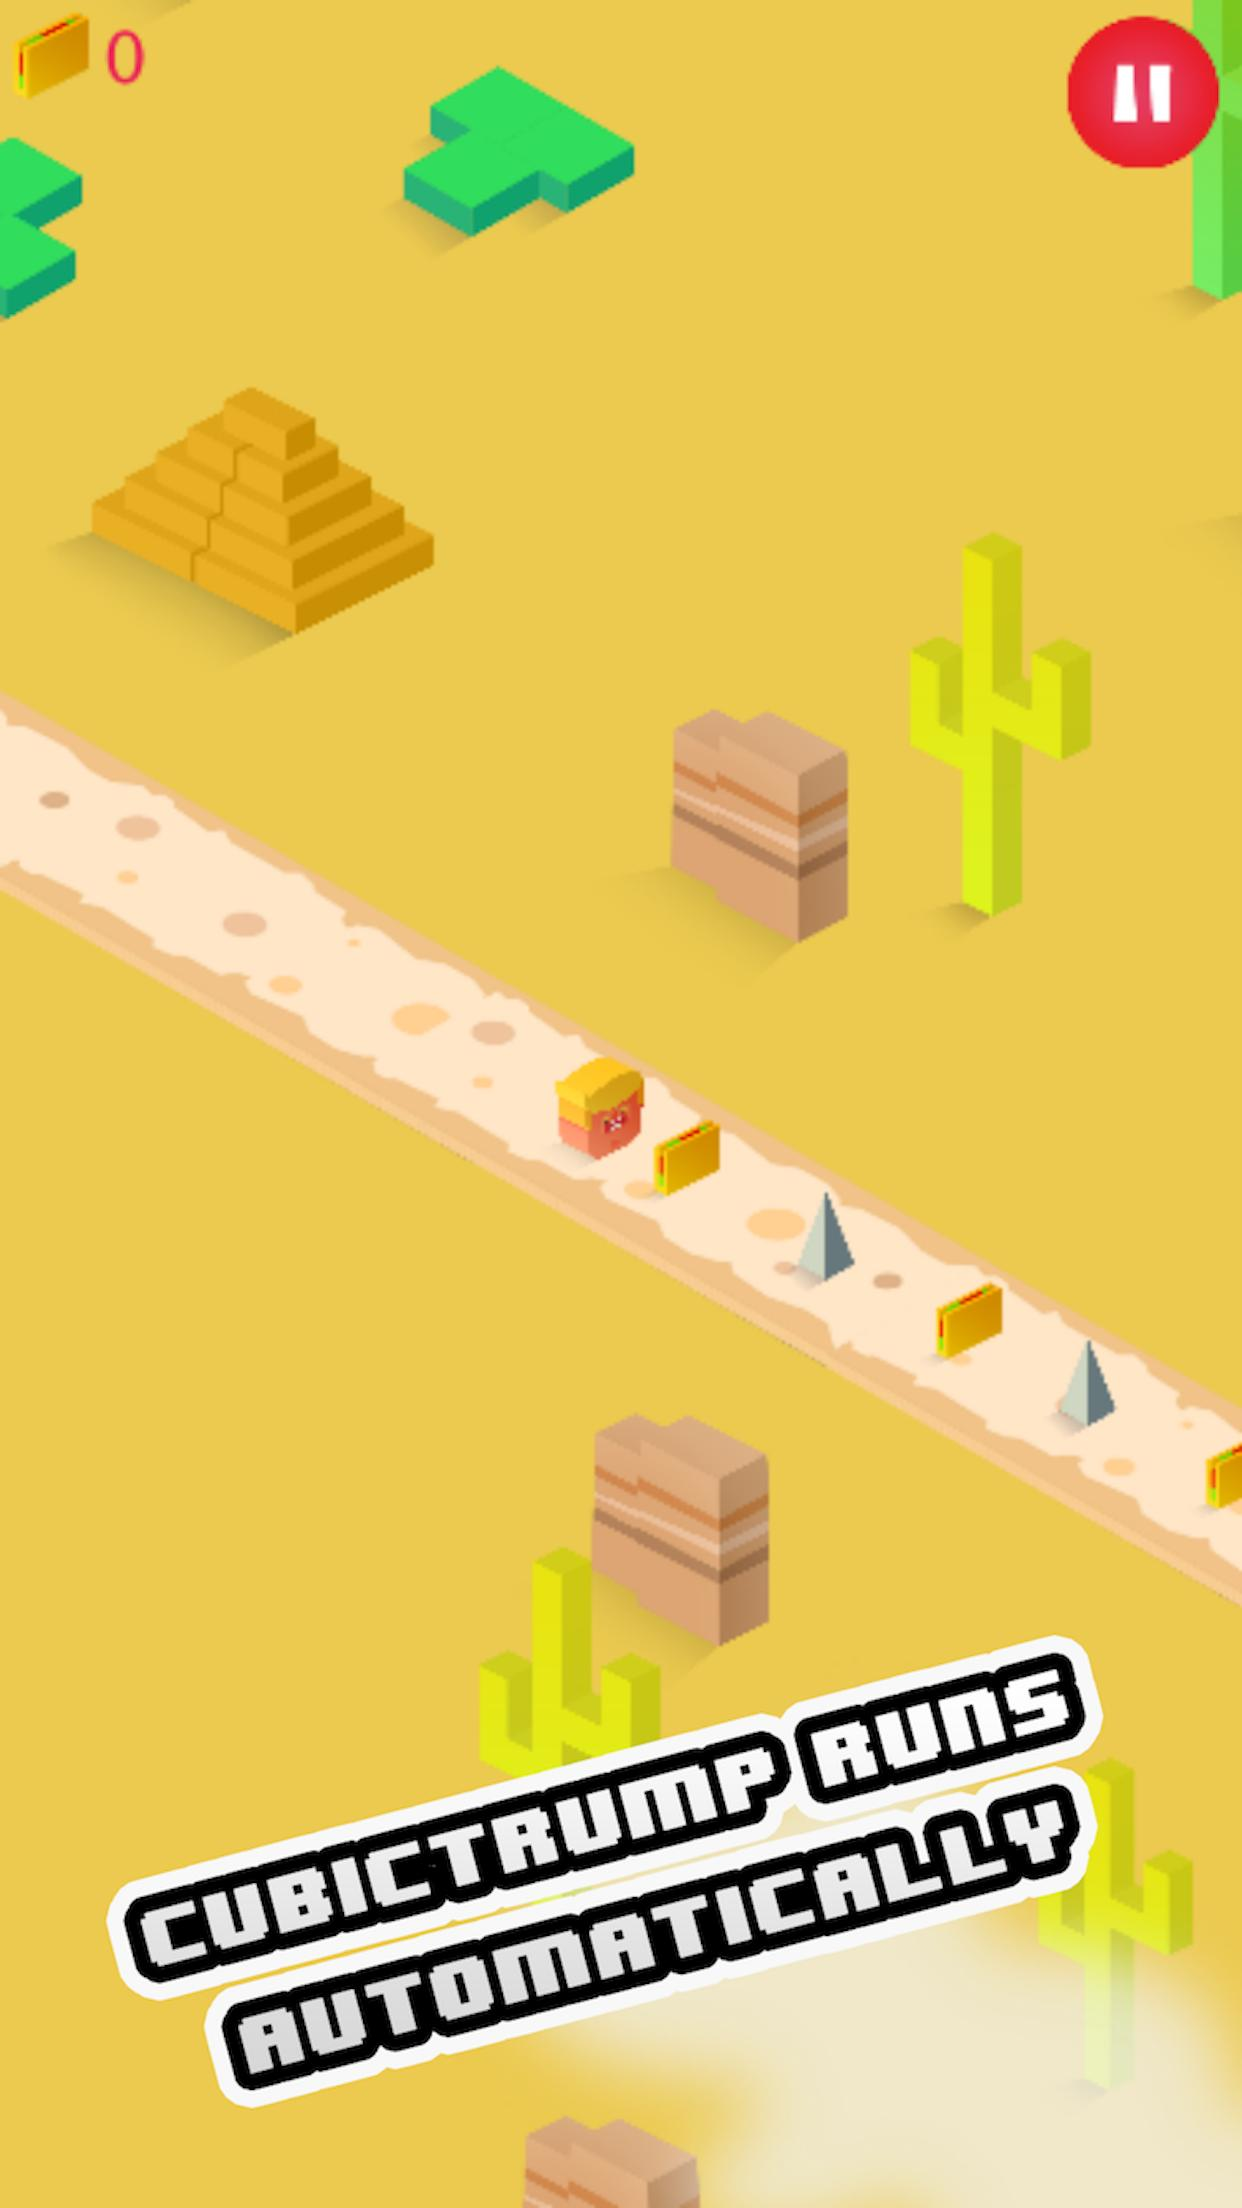 Cubic Trump: Build The Wall 🌮 3